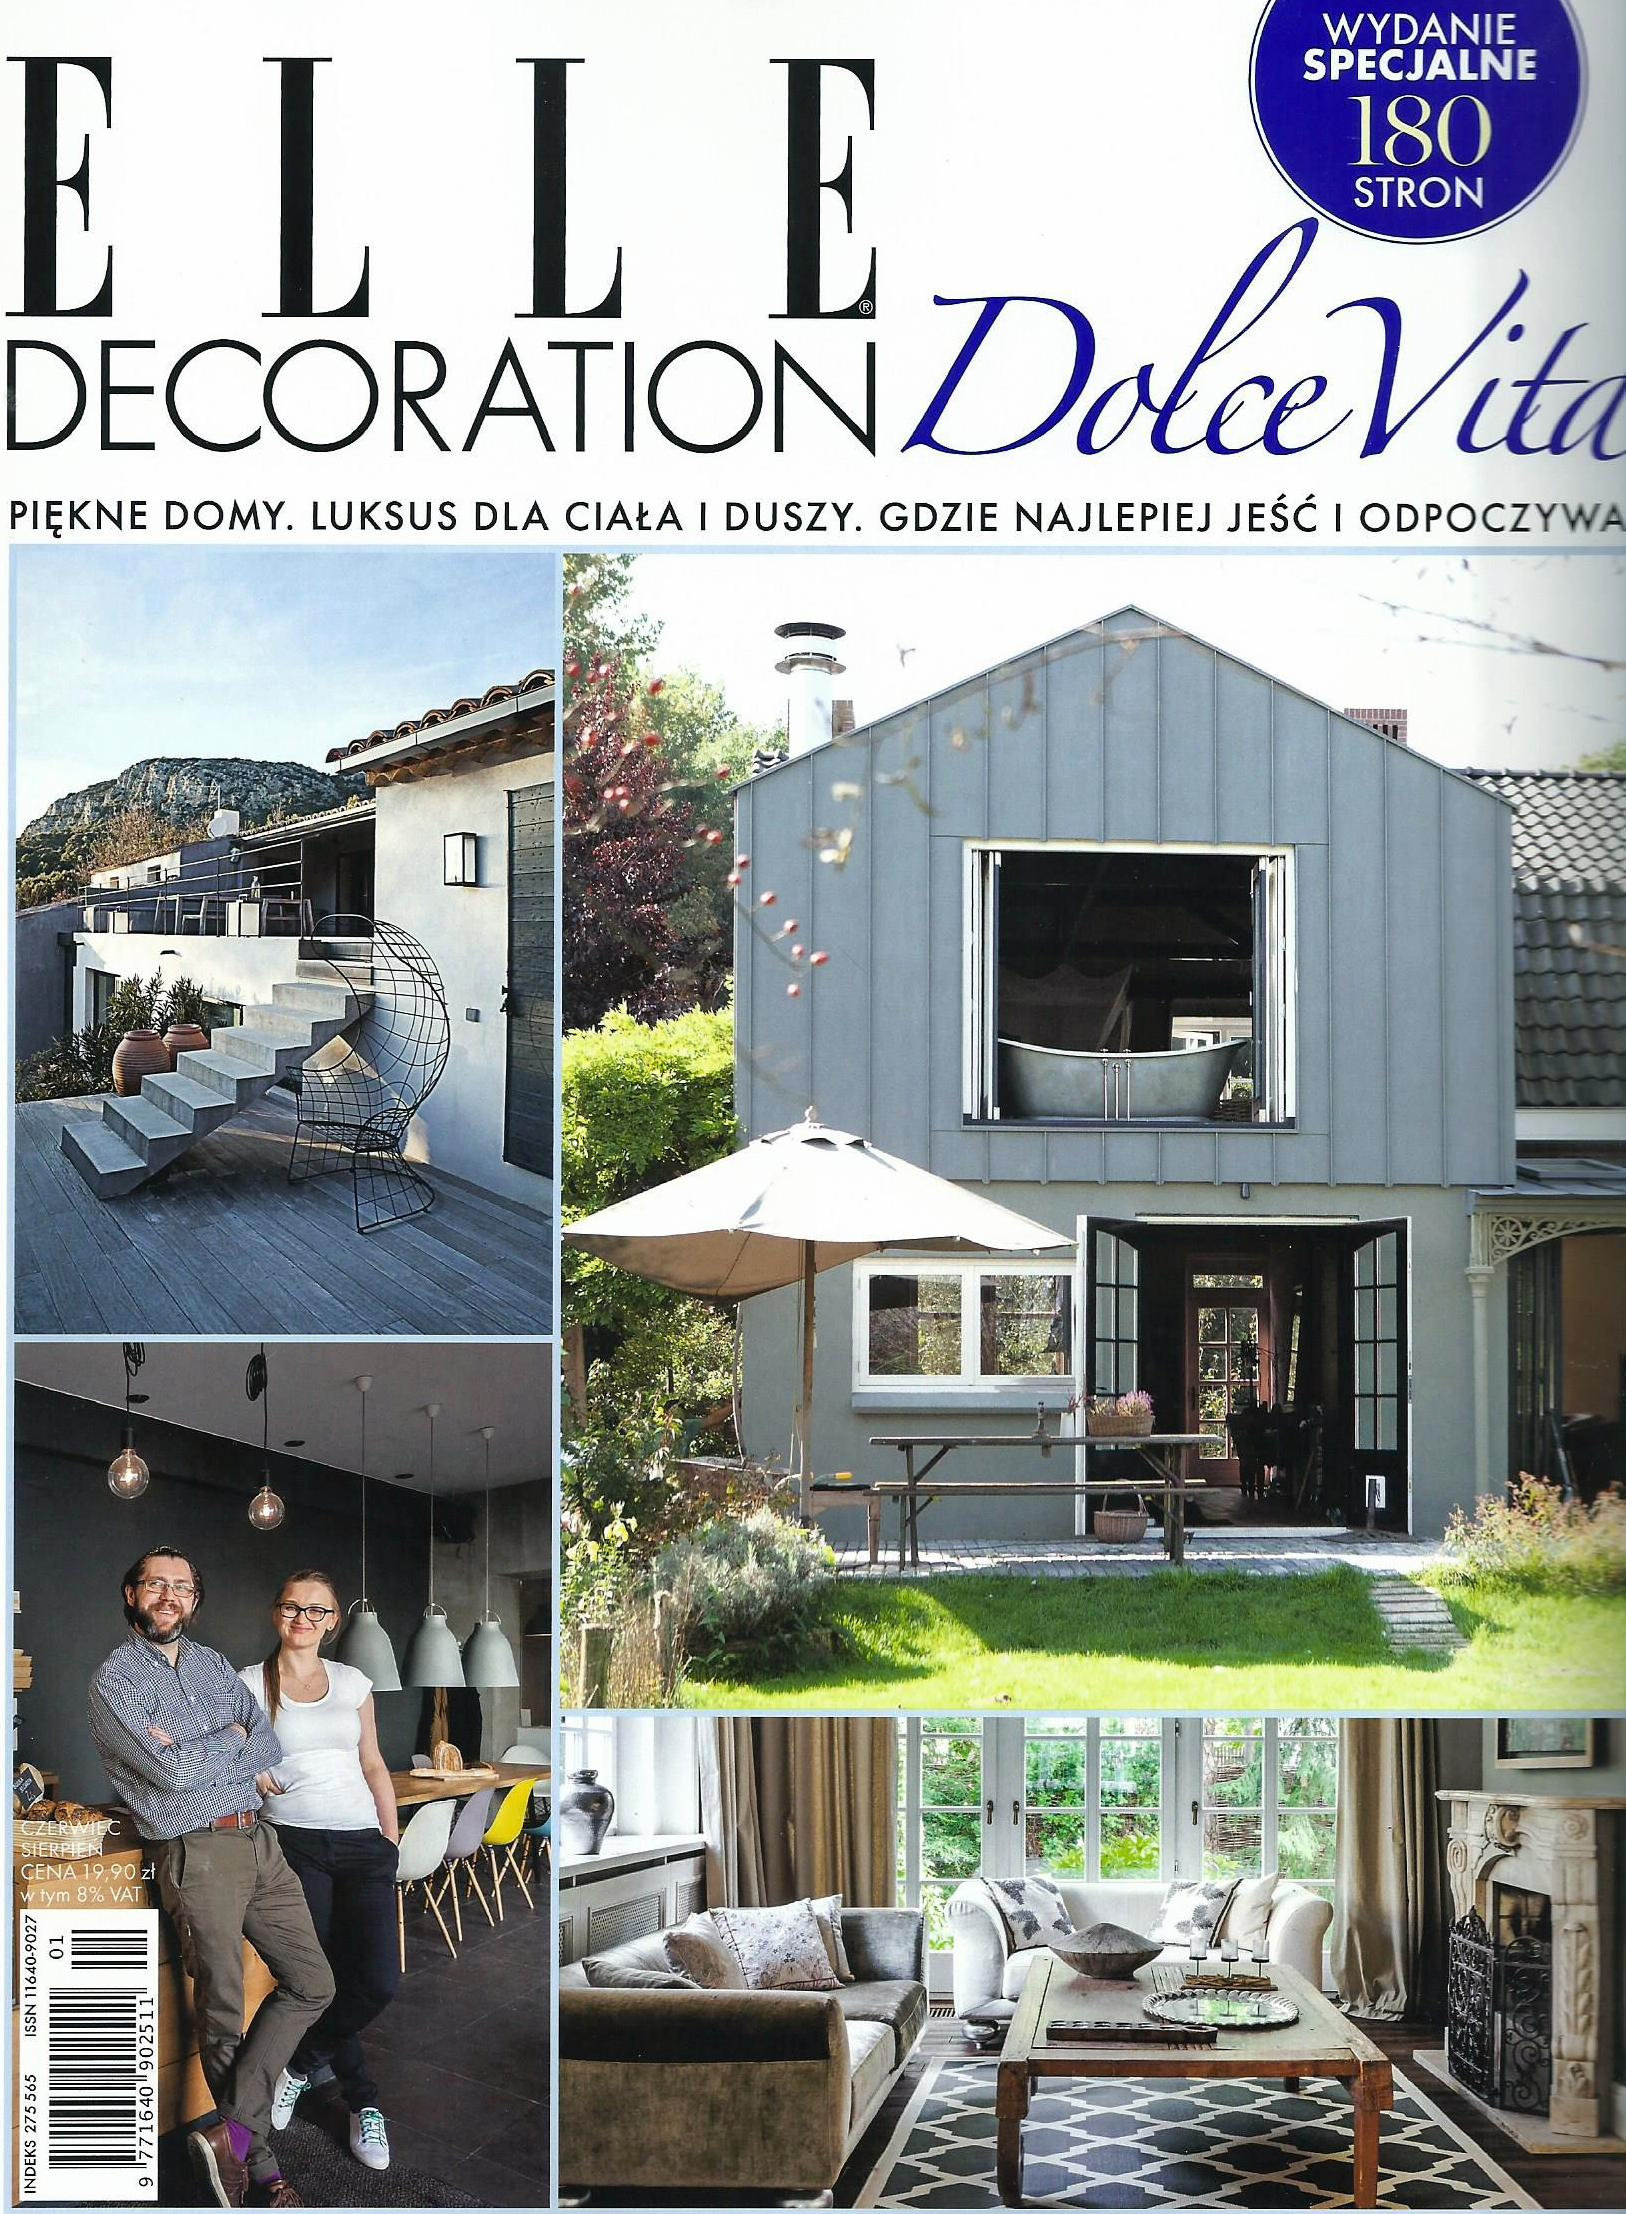 Elle Decoration Dolce Vita